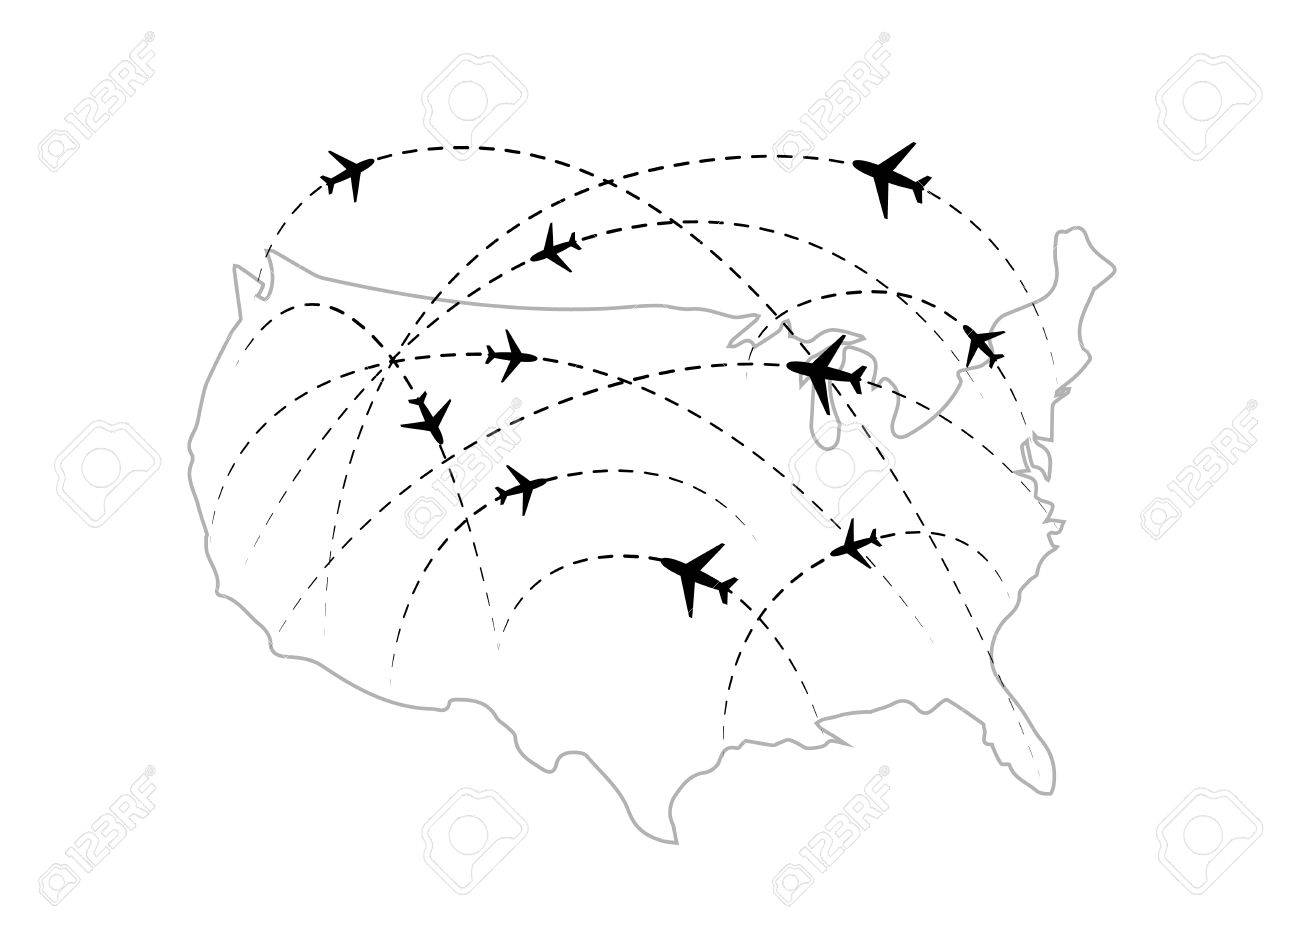 Air Routes With Black Plane Icons On USA Map Isolated On White - Black and white usa map